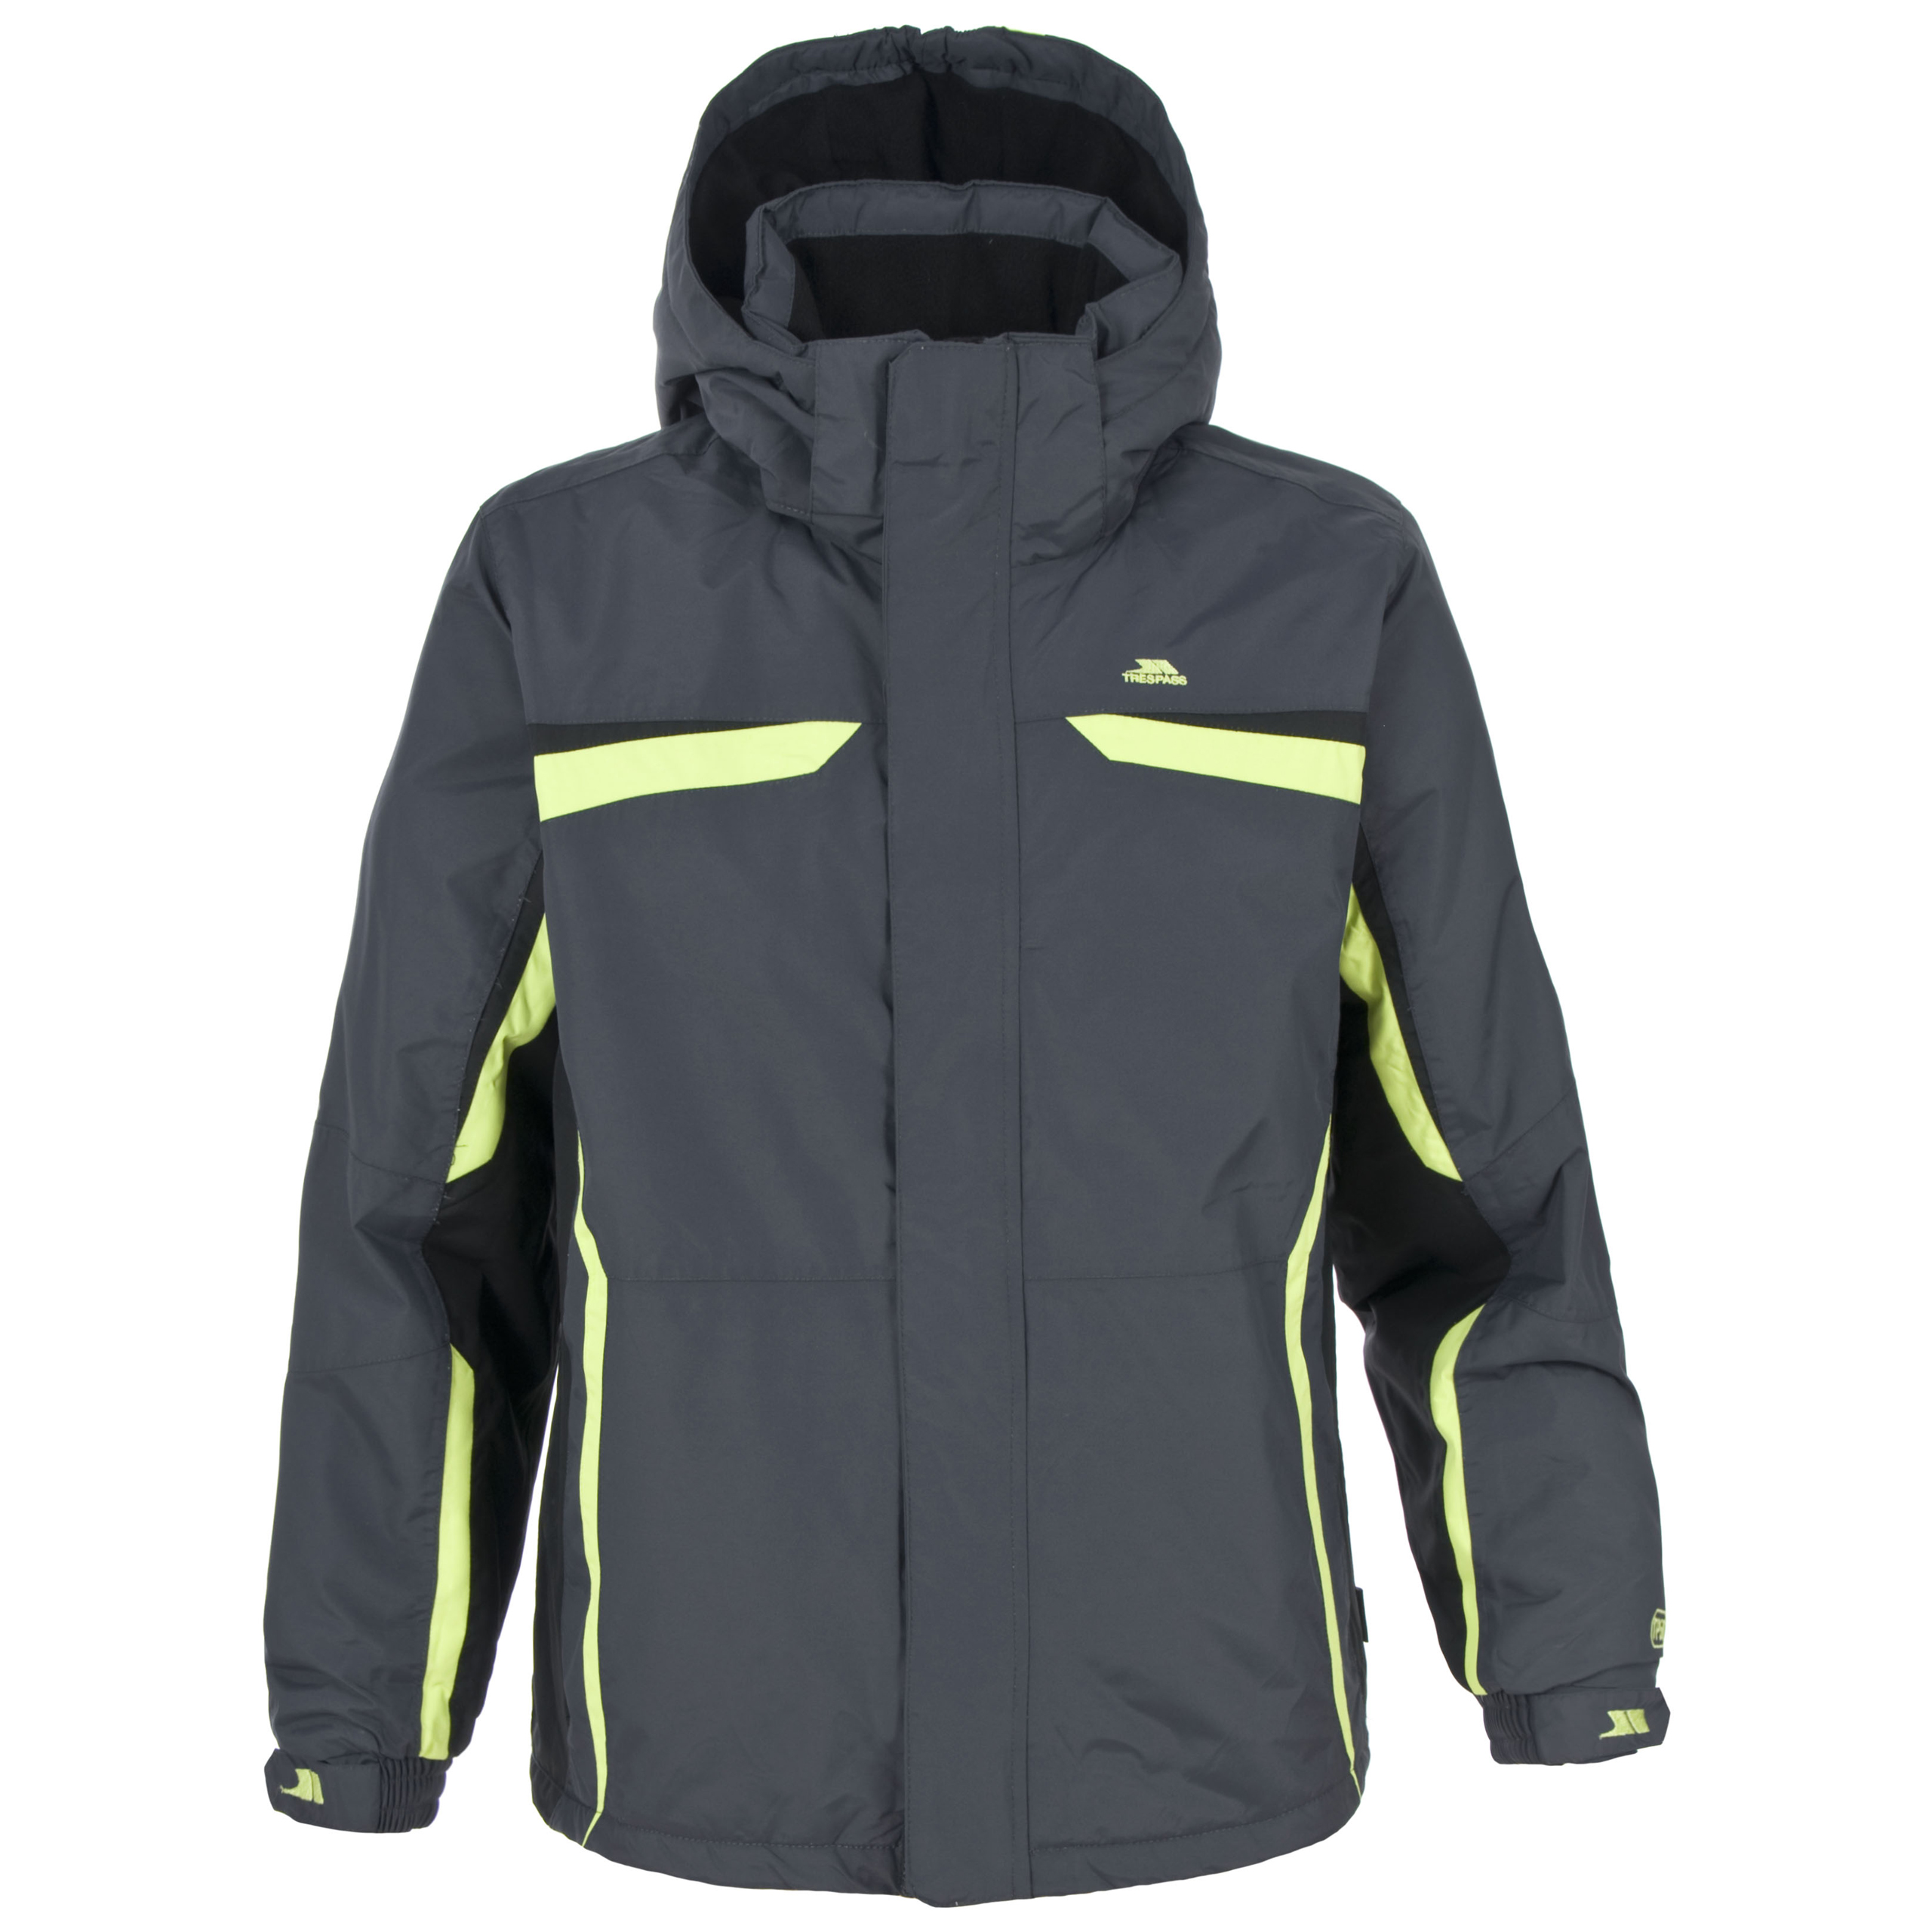 Boys Winter Coats & Winter Jackets. He'll be ready for any adventure with our selection of boys winter jackets and winter coats! Whether he needs a light, waterproof jacket to keep out that fall or freezing winter drizzle, or a high performance alpine jacket for boys, buzz24.ga has exactly what you're looking for in boys winter coats.